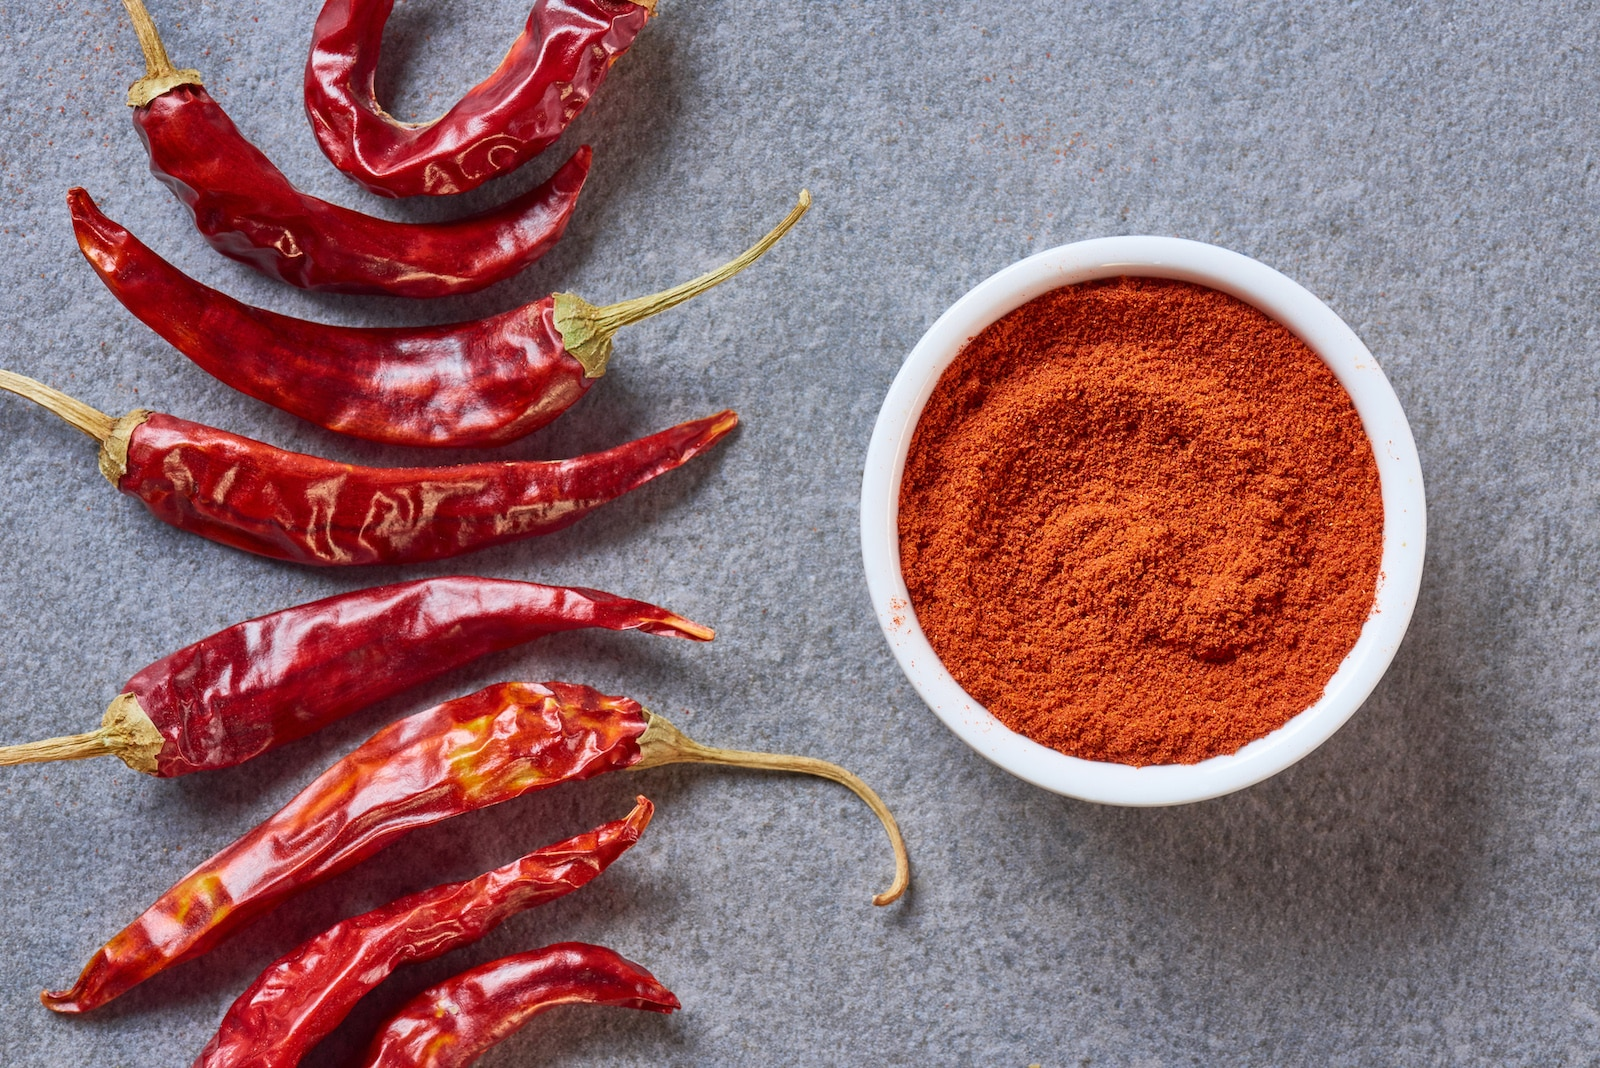 What's A Good Dried Chili Substitute?